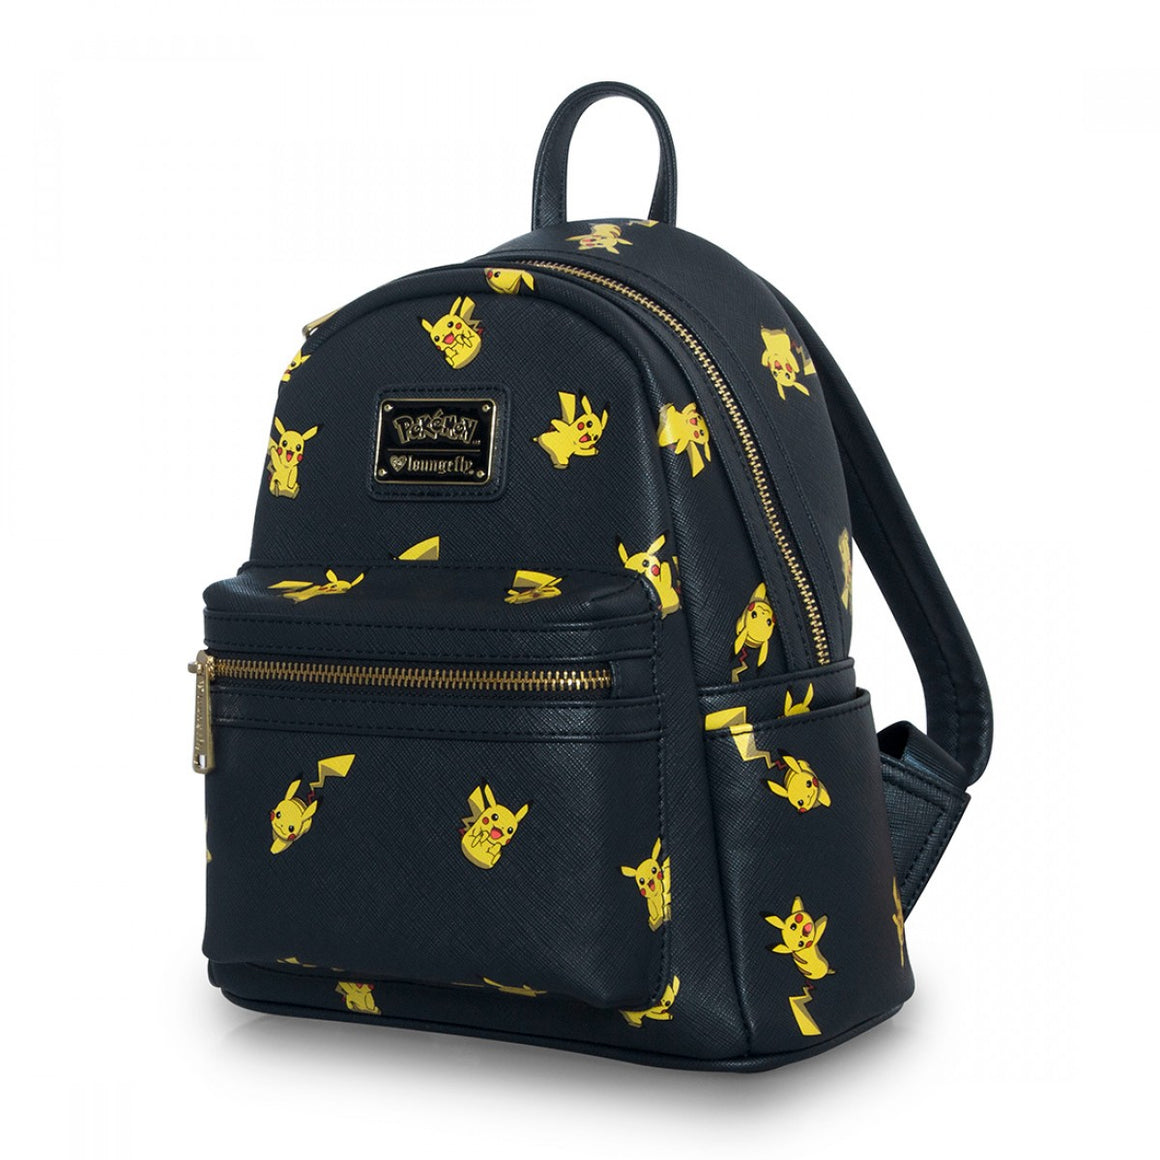 Loungefly x Pokémon Pikachu Print Mini Faux Leather Backpack